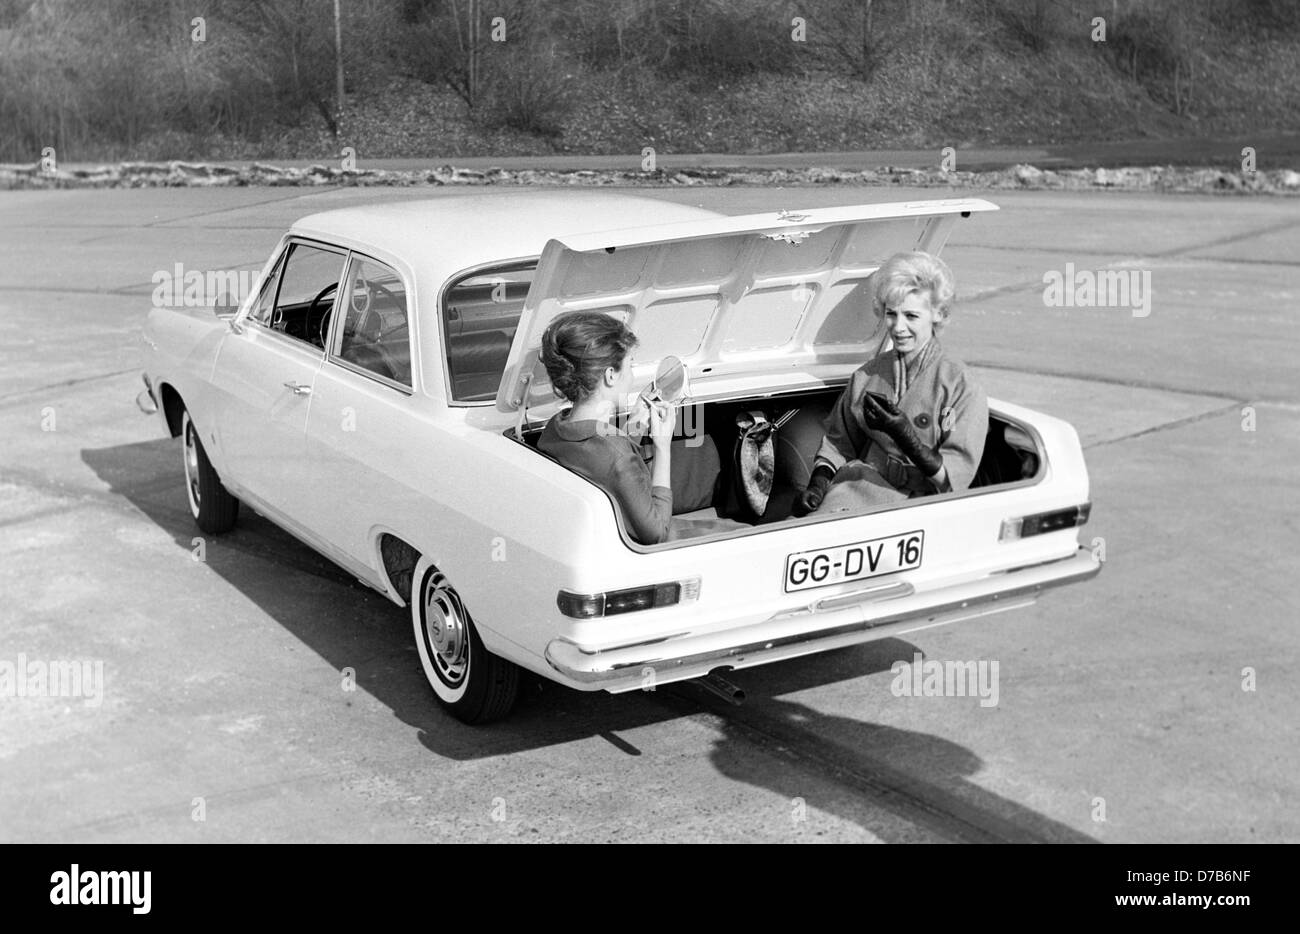 """The new Opel """"Rekord"""" is presented in Ruesselsheim on the 5th of February in 1963. The picture shows two women sitting in the trunk of the new Opel to illustrate the car's spaciousness. Stock Photo"""